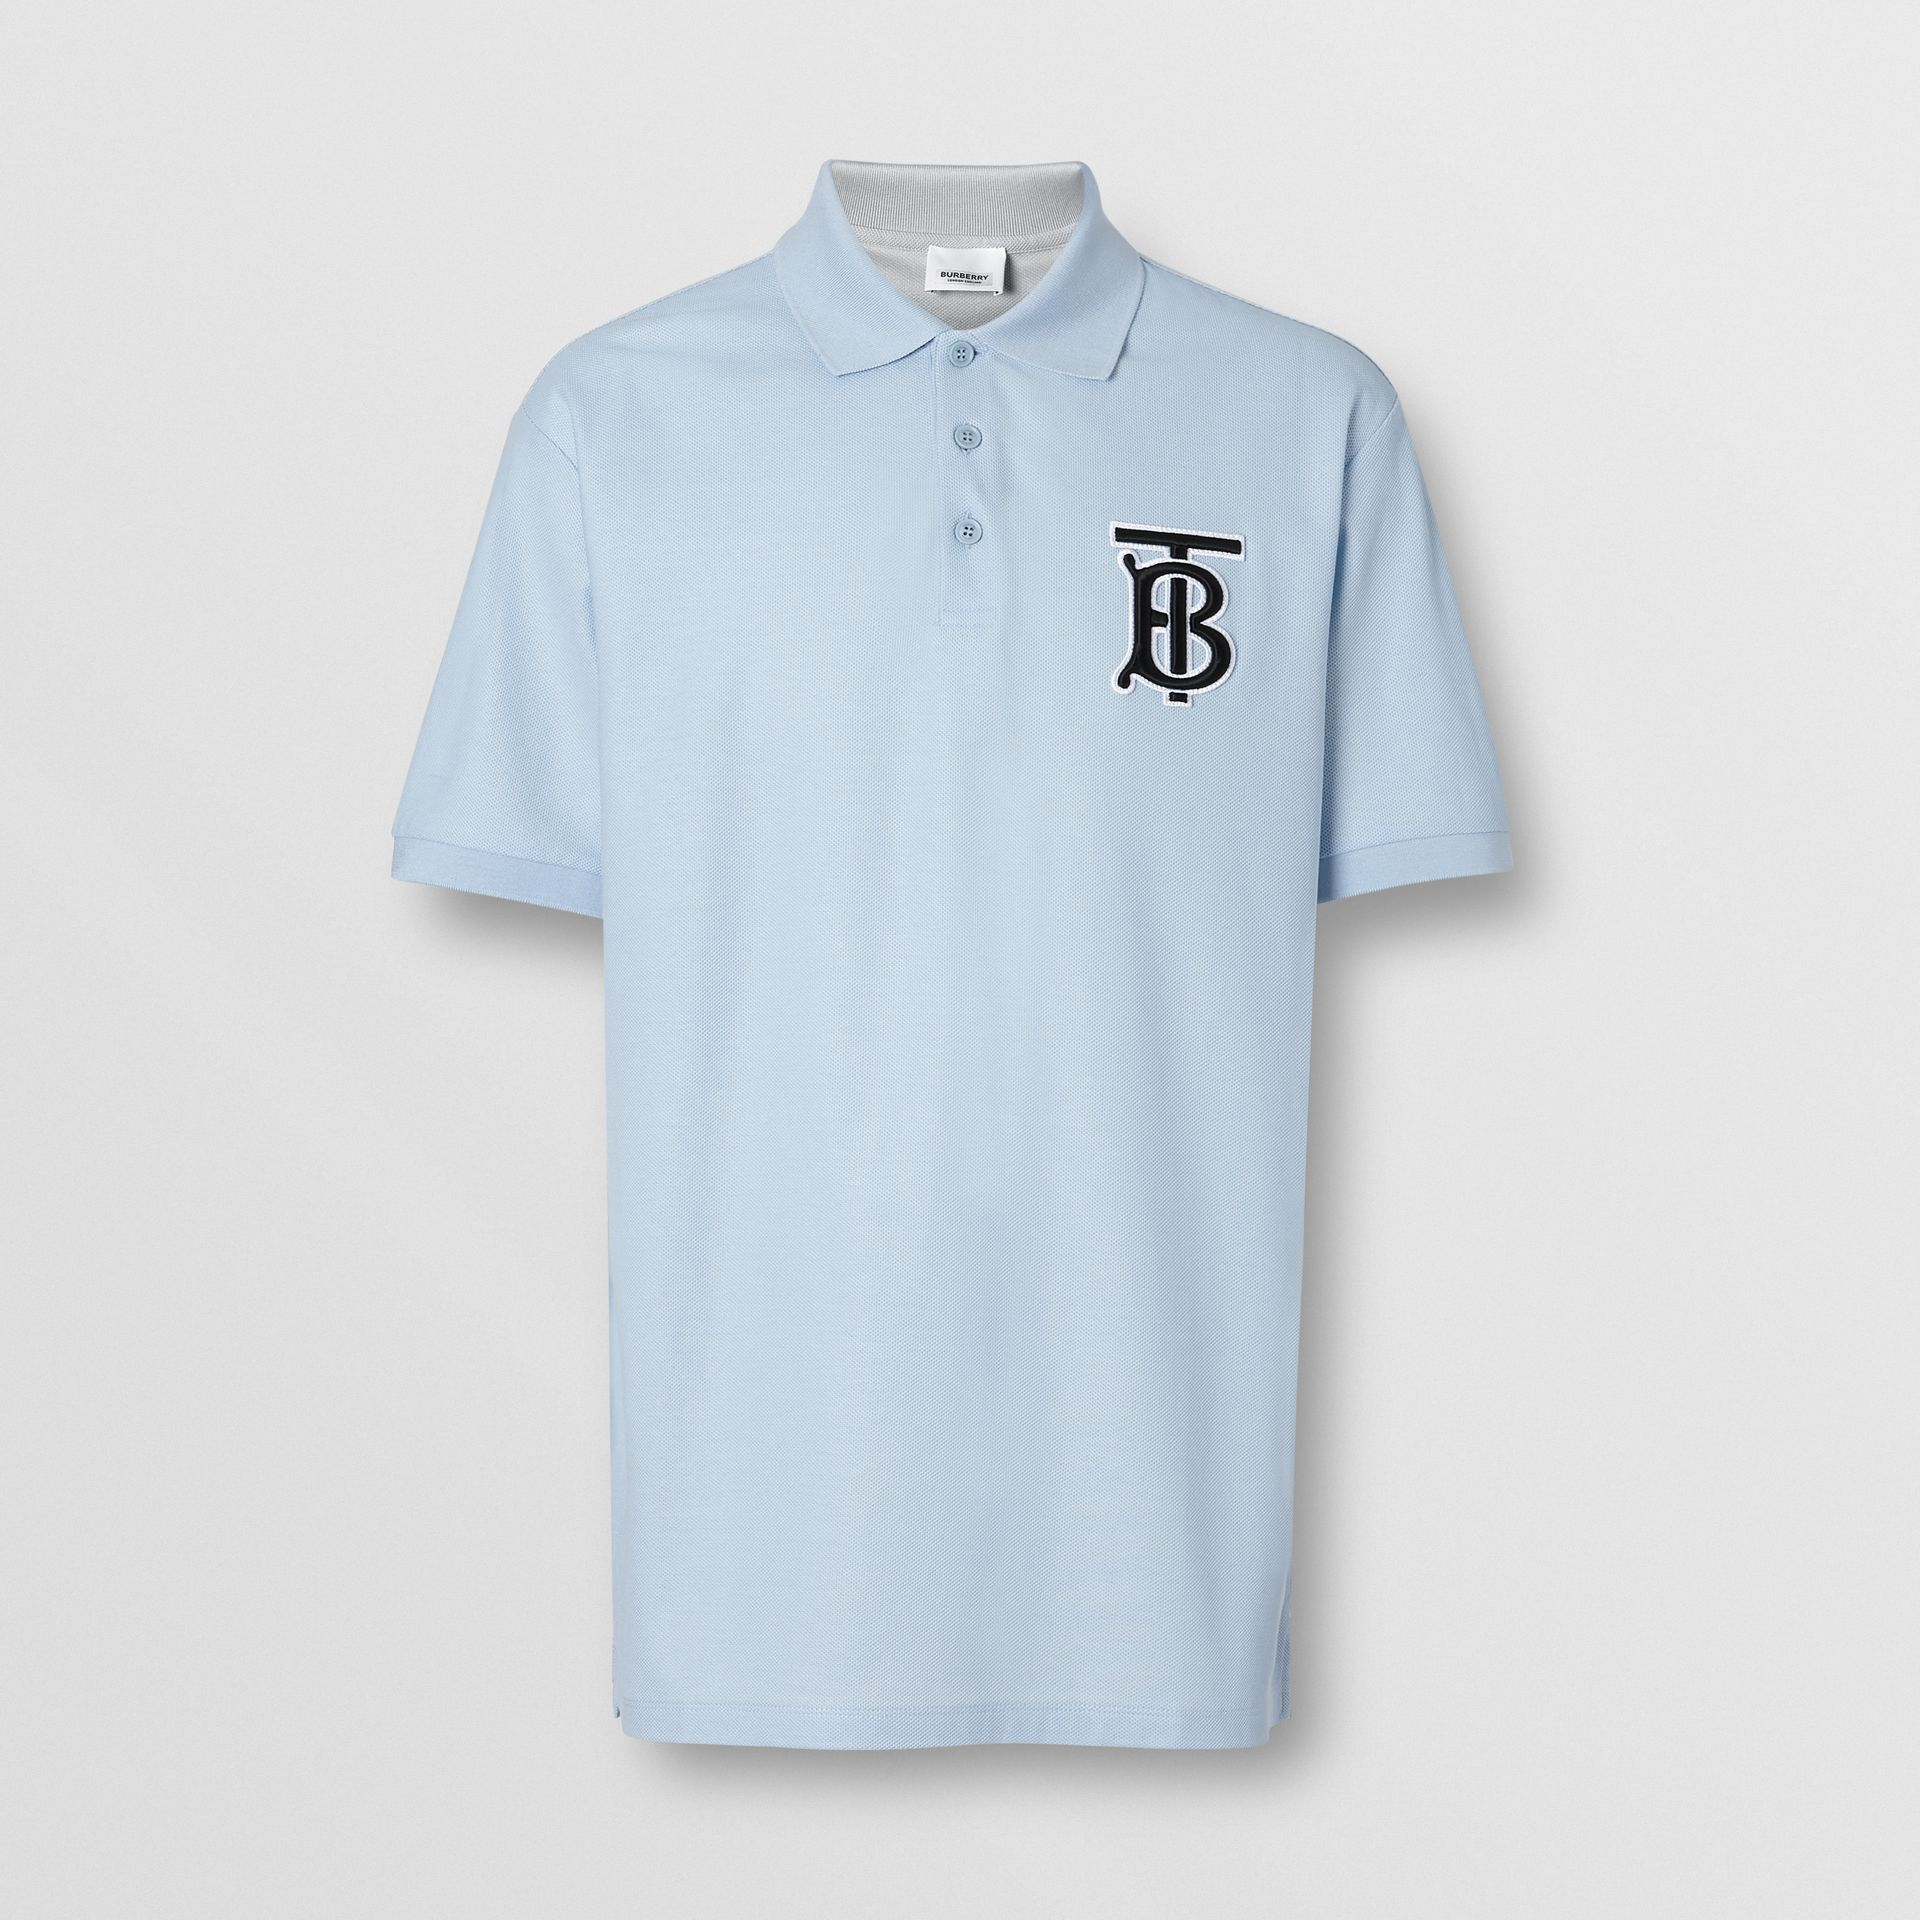 Monogram Motif Cotton Piqué Oversized Polo Shirt in Pale Blue - Men | Burberry United Kingdom - gallery image 3